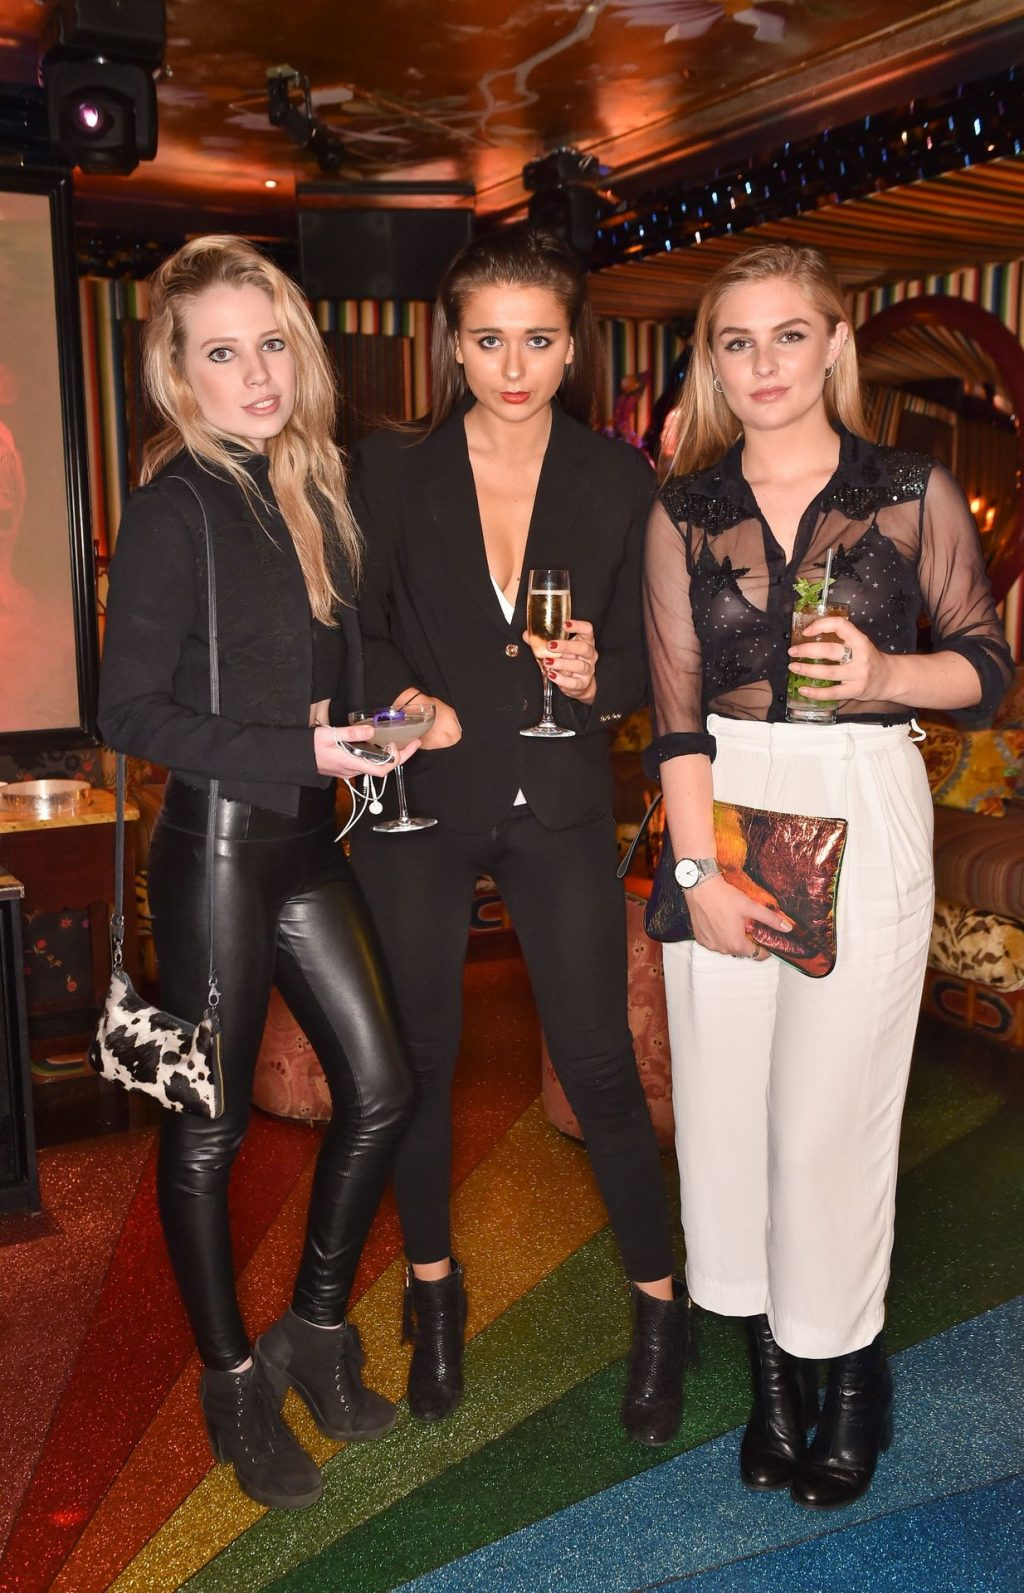 Maisie Mould Looks Pretty in a See-Through Bra at the VieLoco Launch Party (3 Photos)